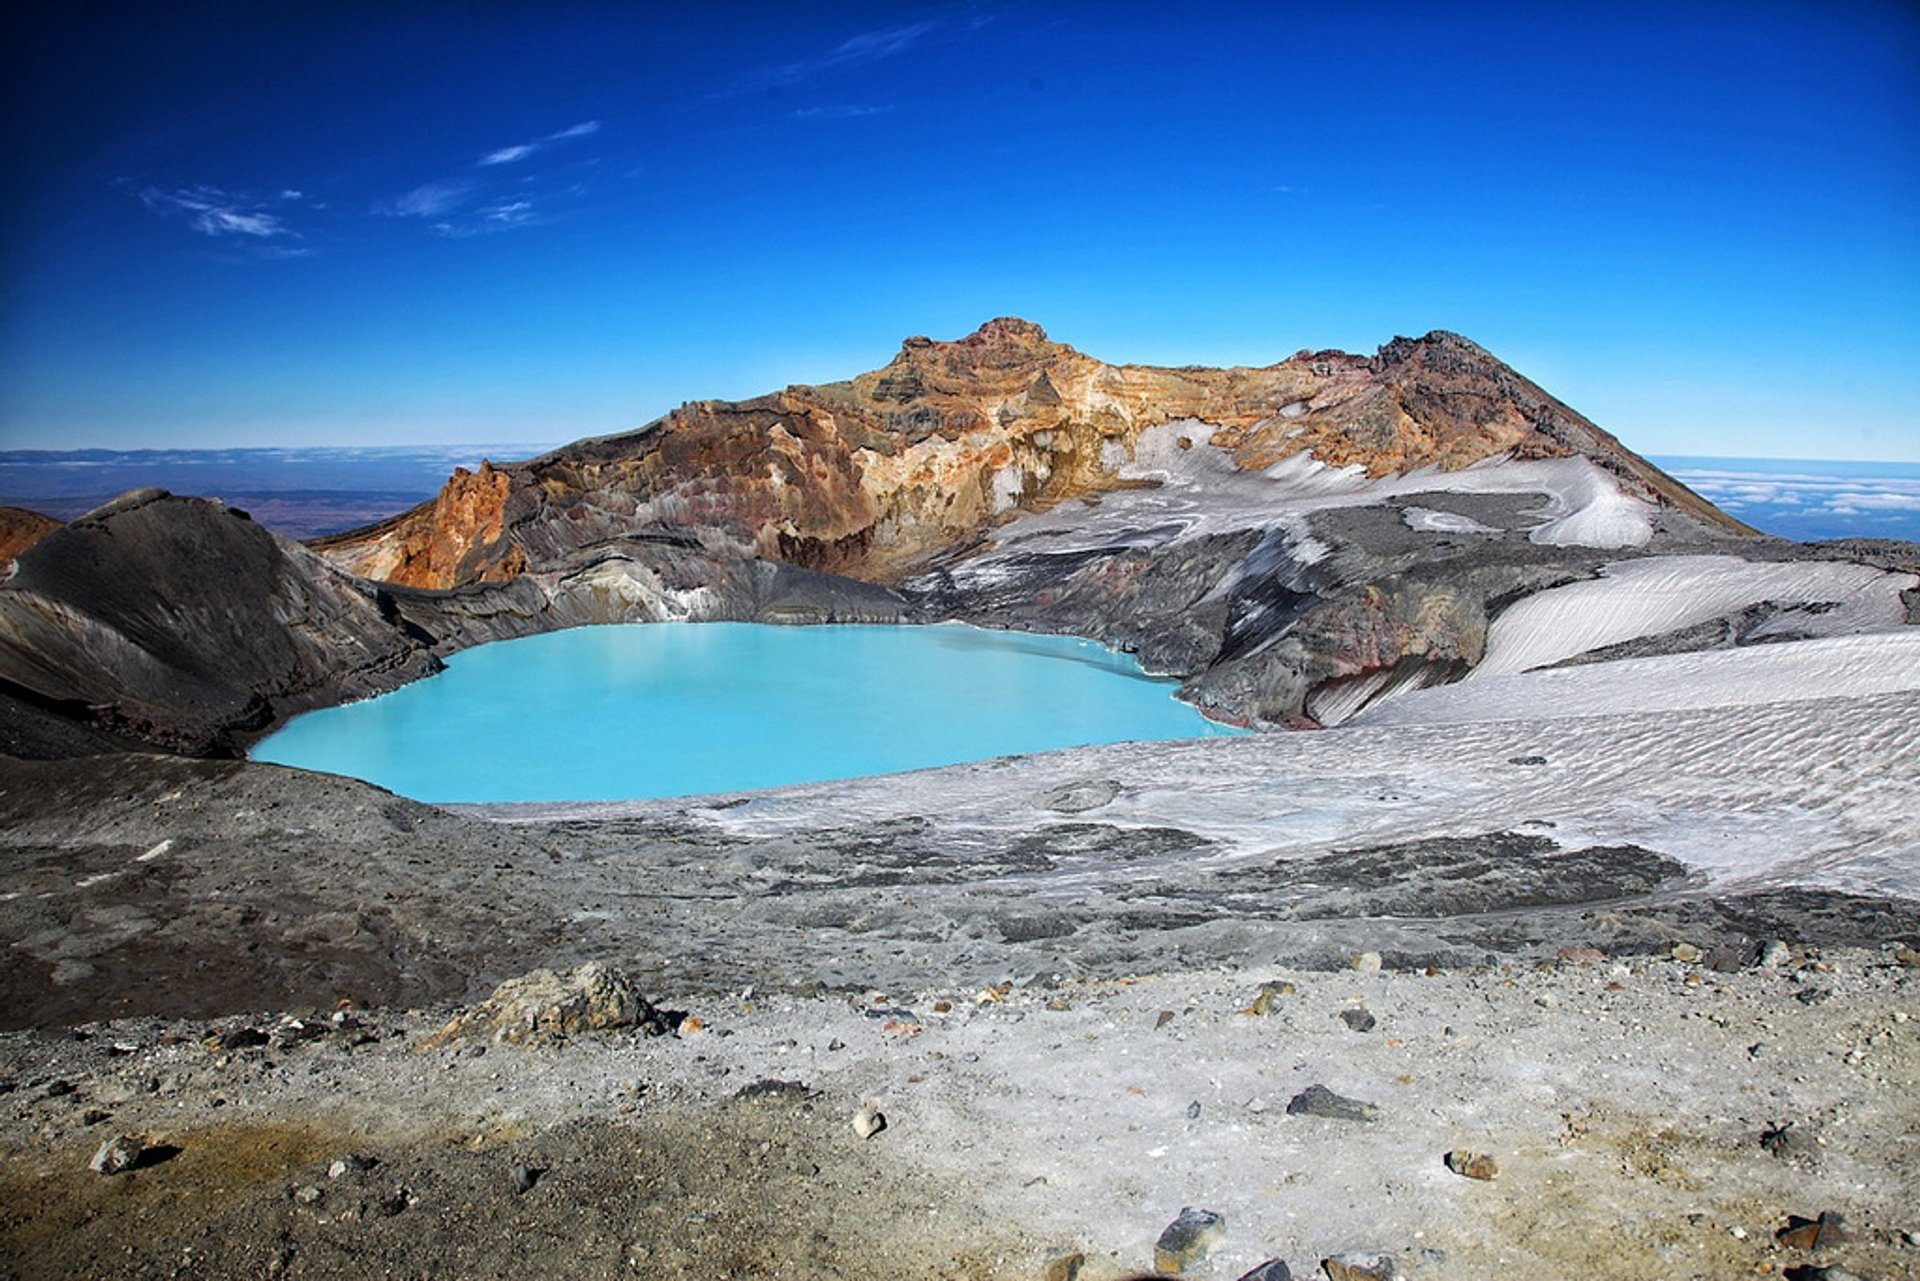 Mount Ruapehu Crater Lake 2020